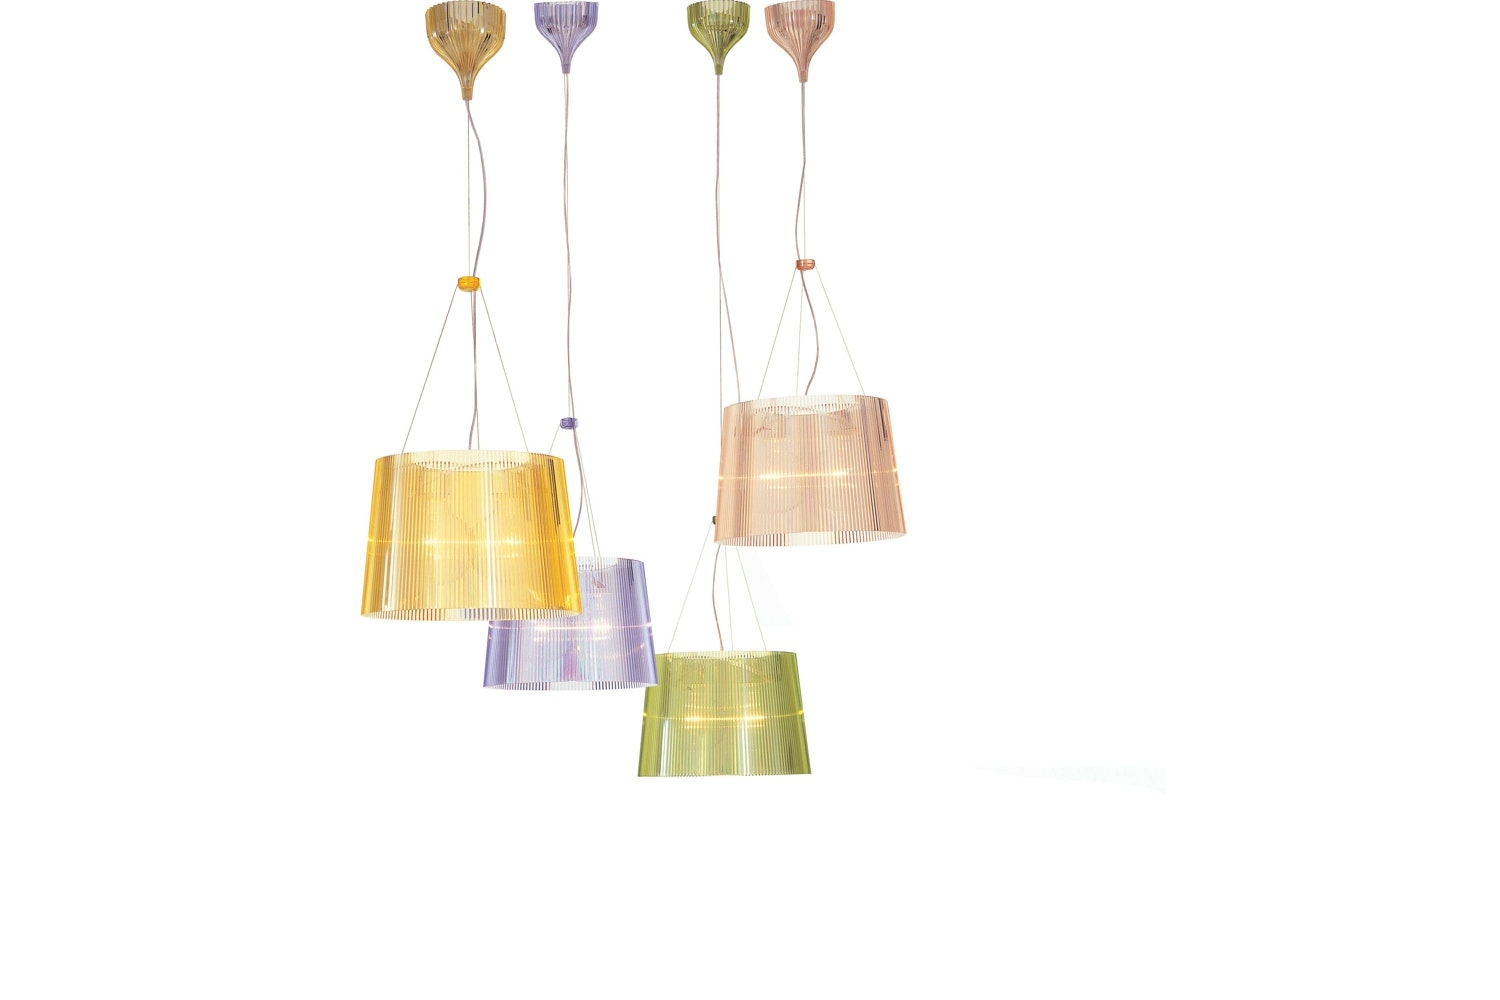 Ge Metallic Suspension Lamp by Ferruccio Laviani for Kartell